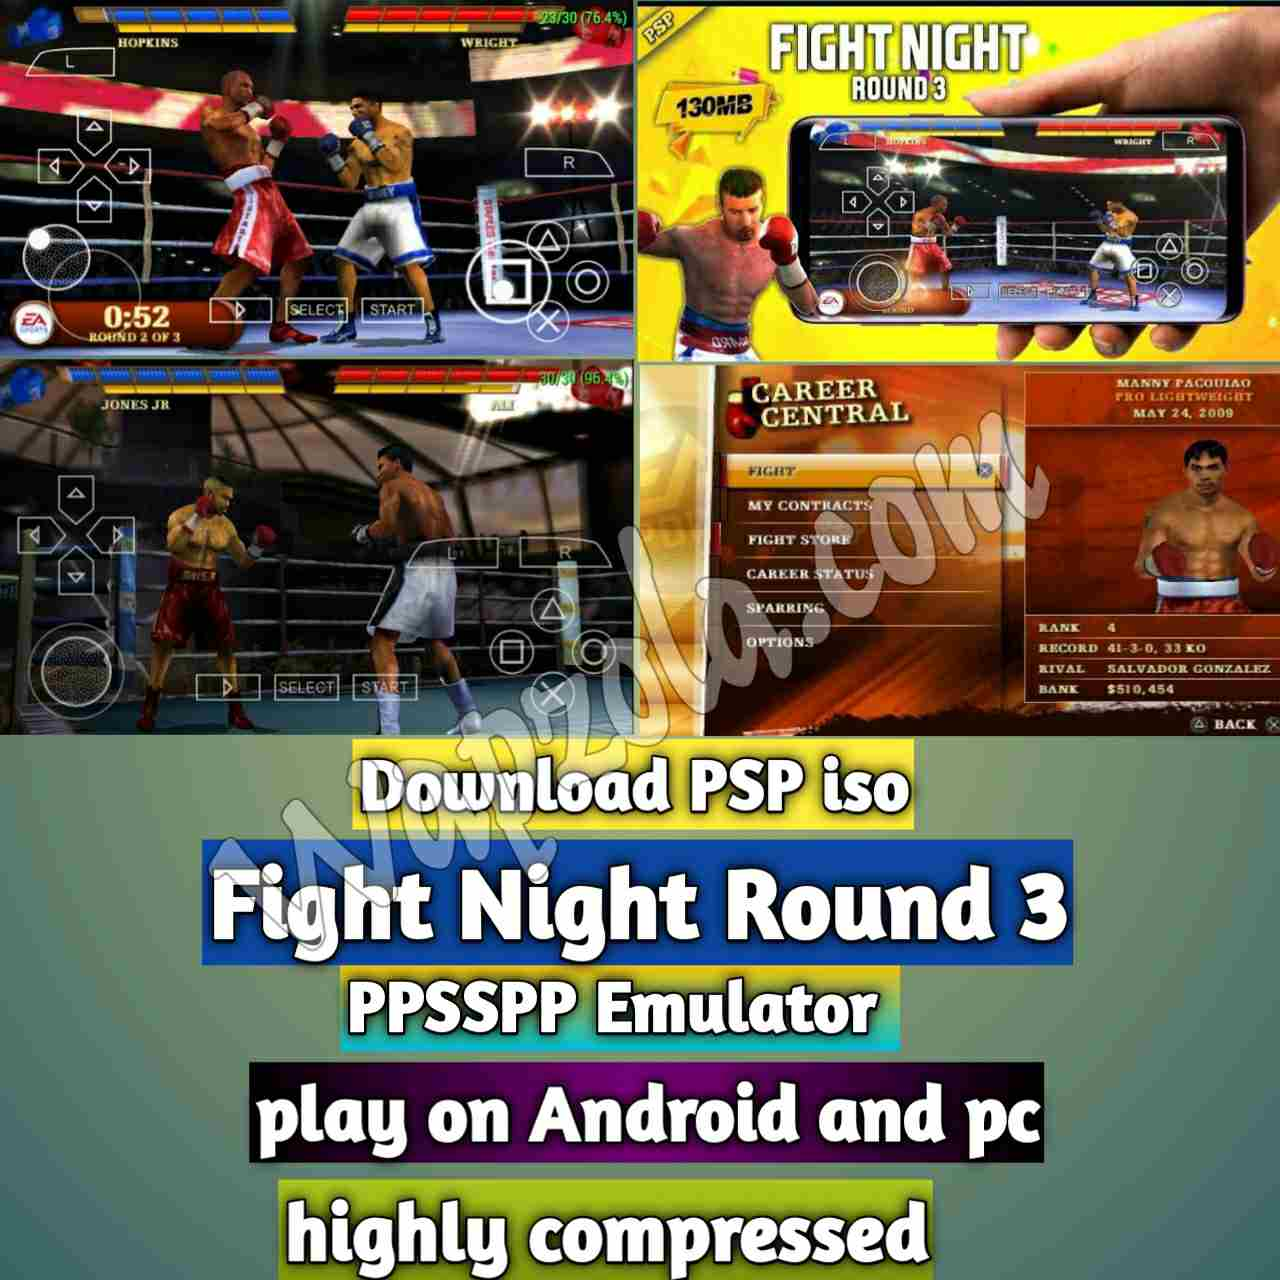 fight_night_round_3_ppsspp_iso_compressed_download